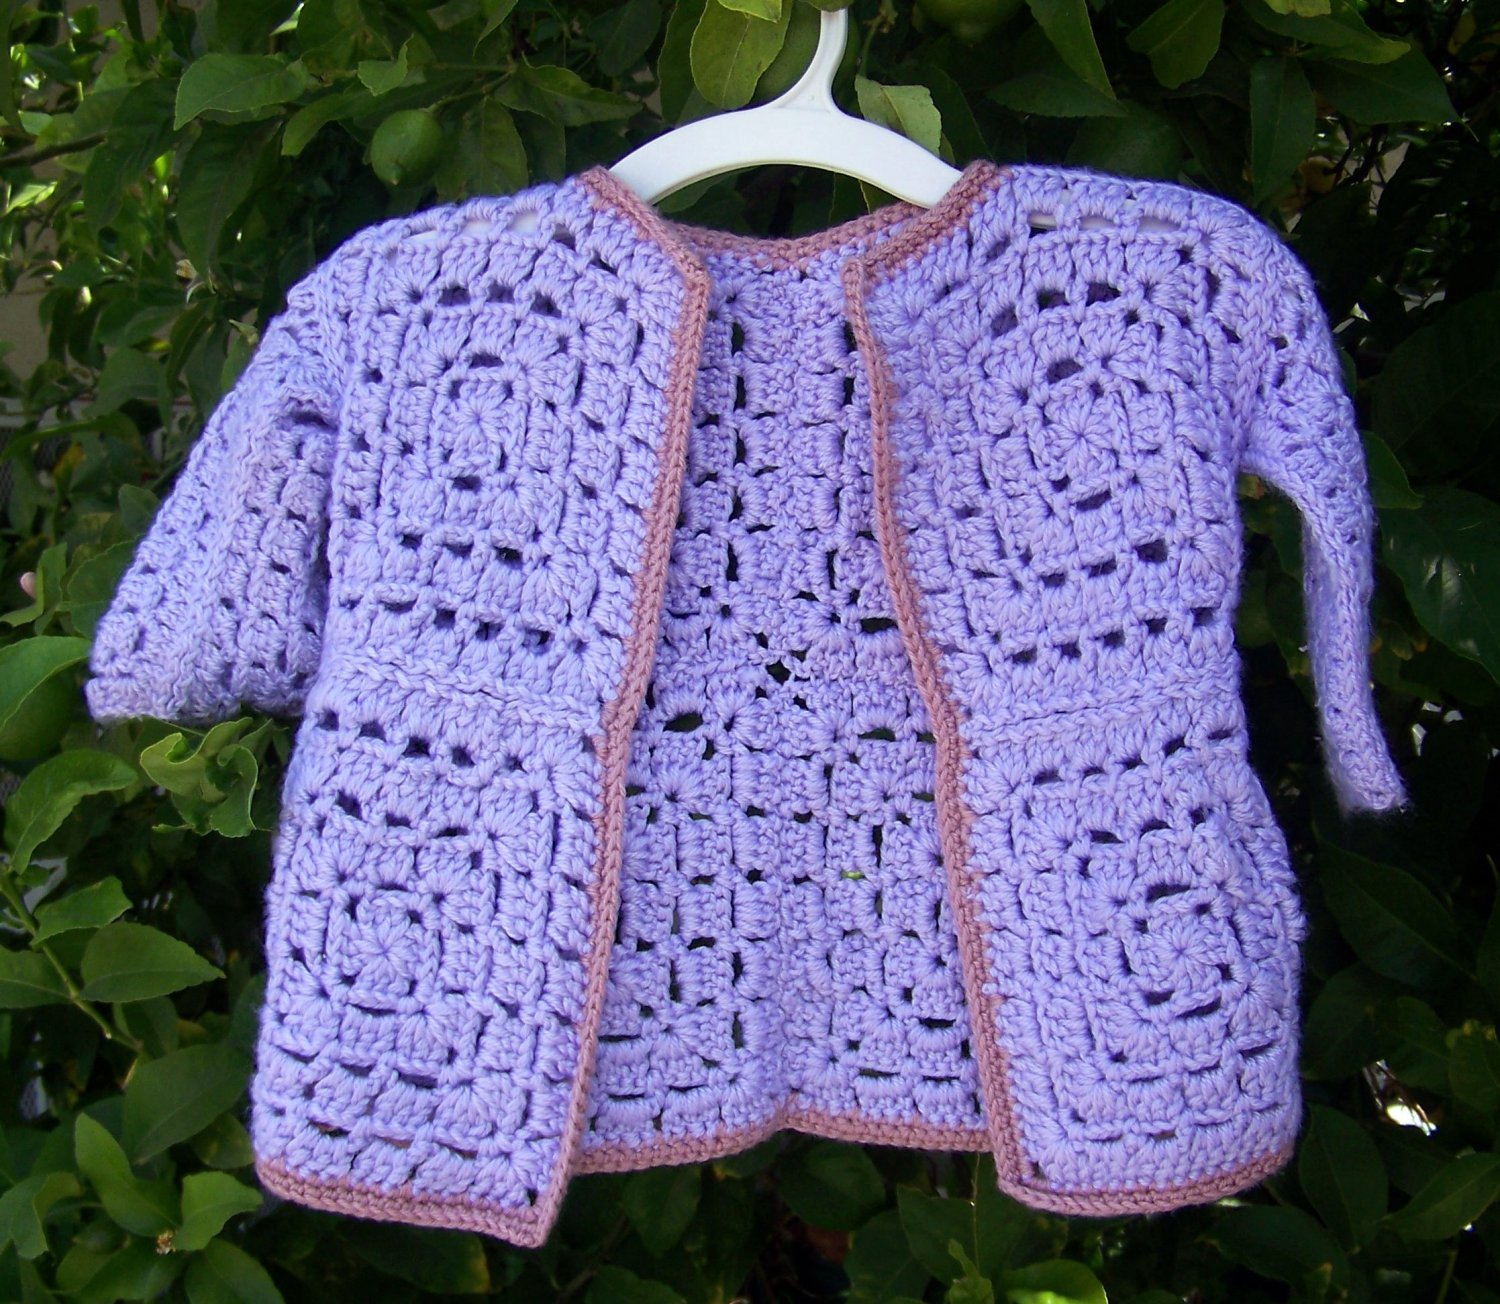 Crochet Granny Square Sweater Pattern : Granny Square Baby Sweater Pattern